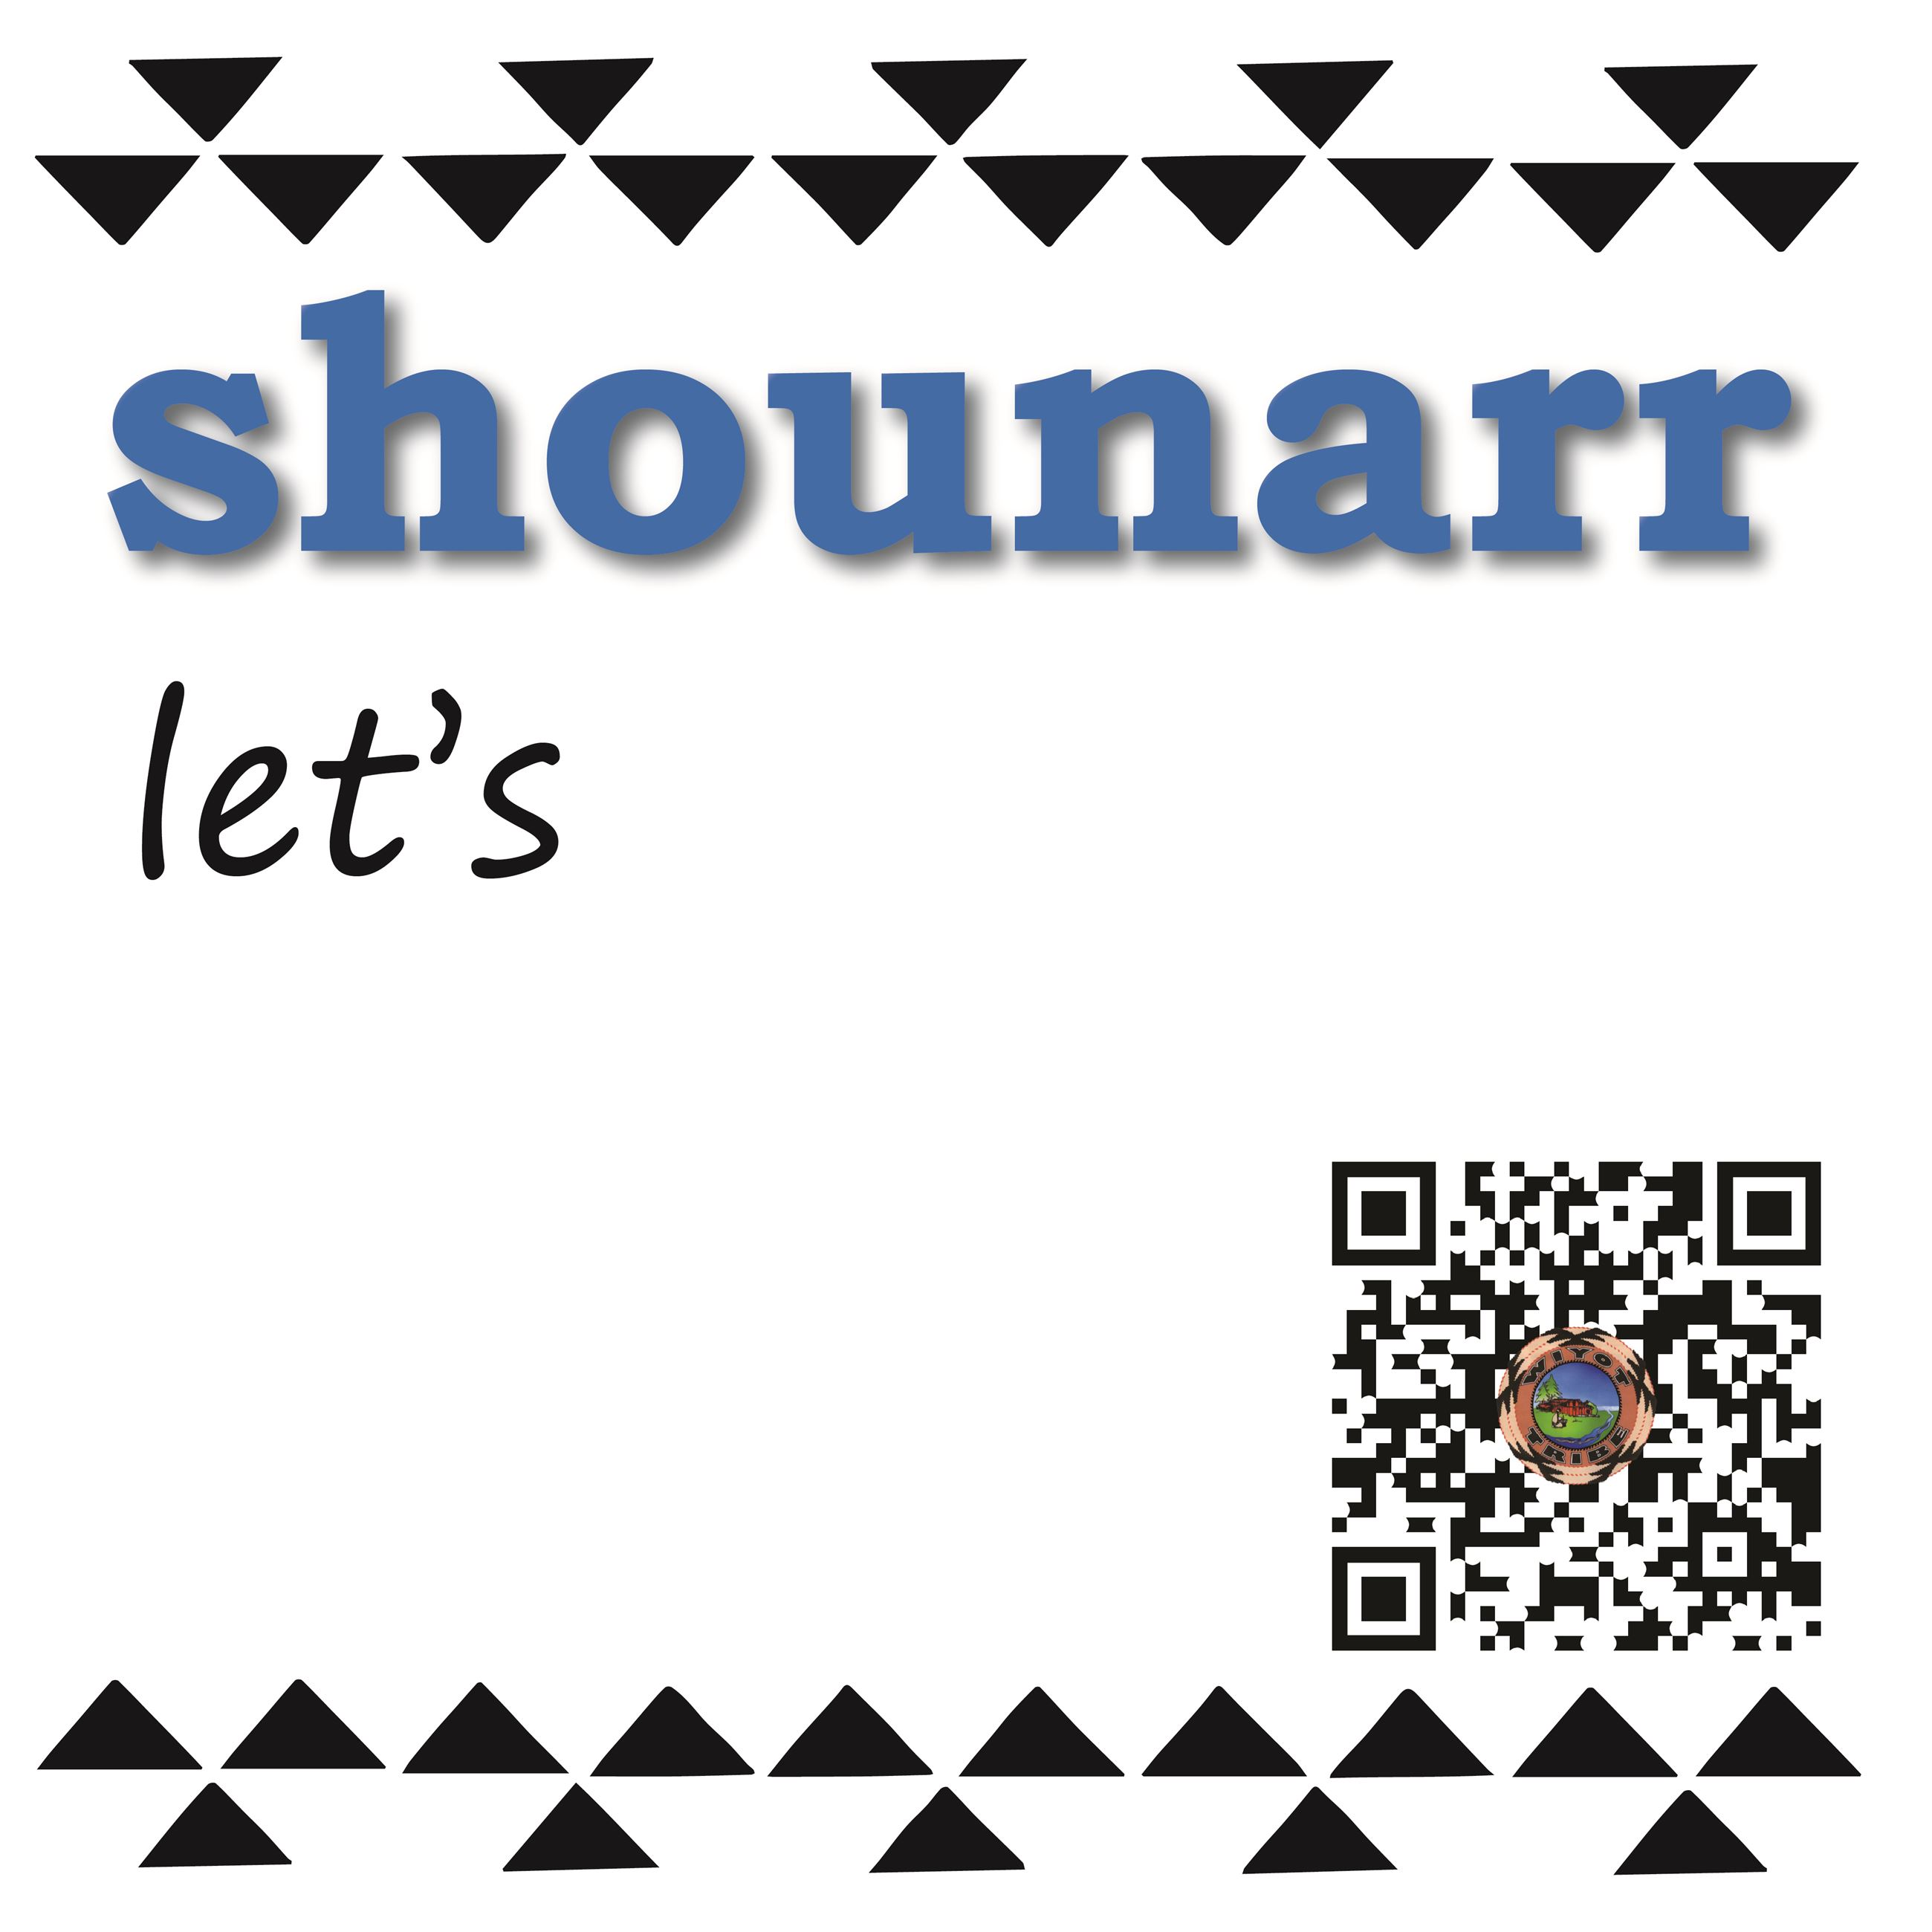 shounarr